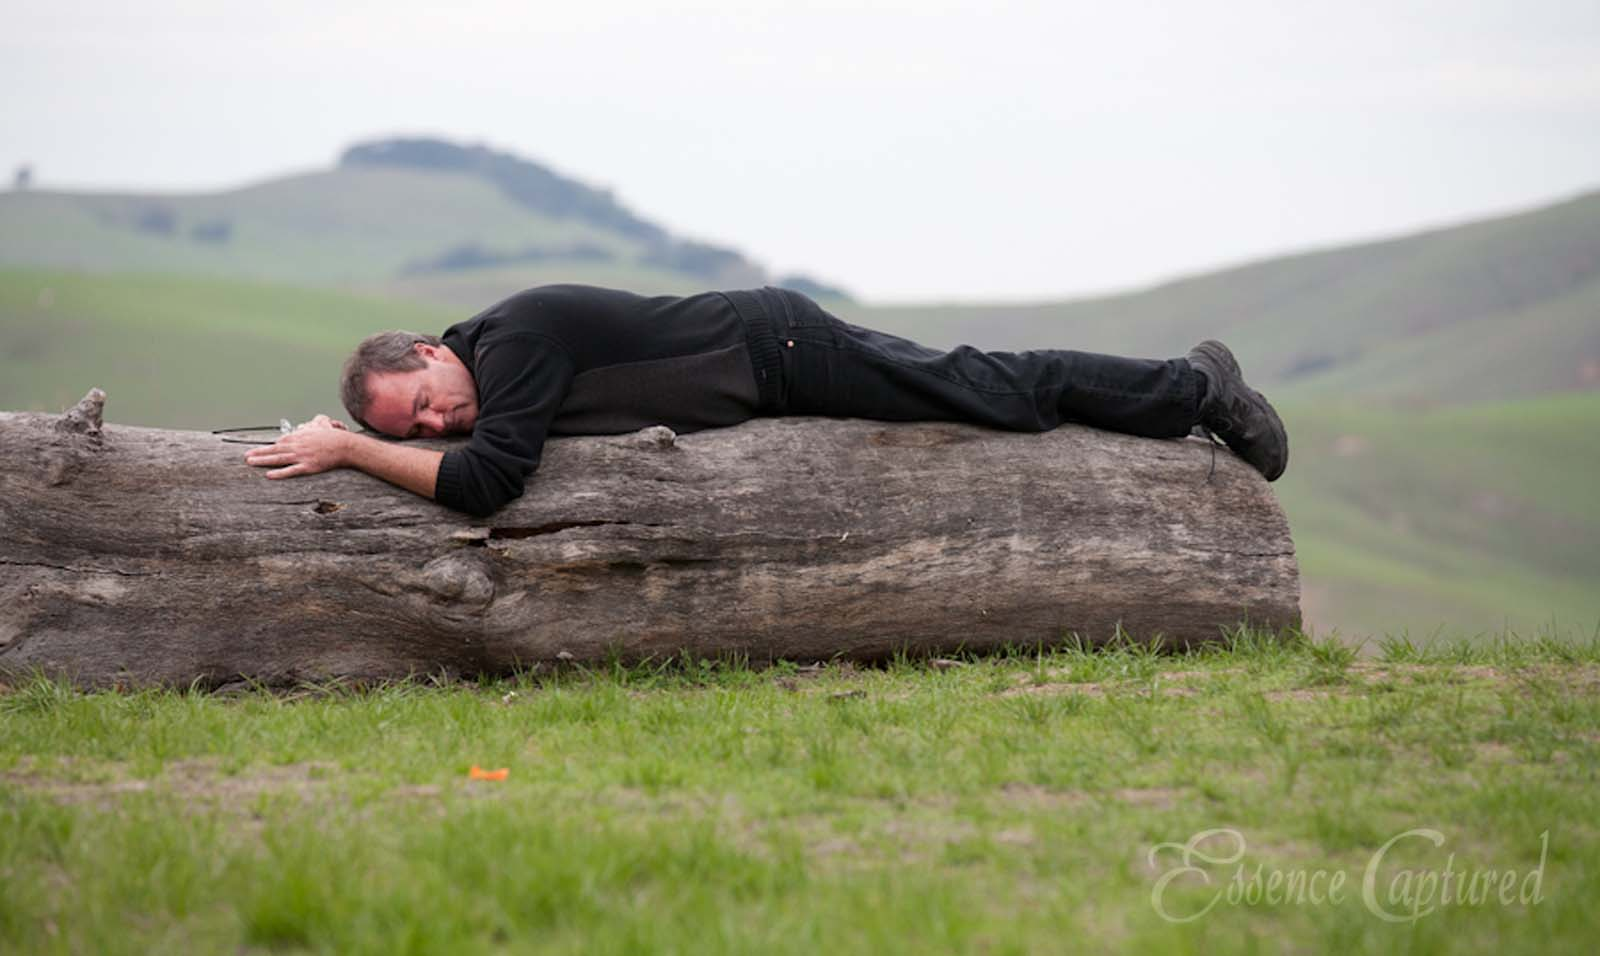 Man napping on tree log green grass foreground green hills background